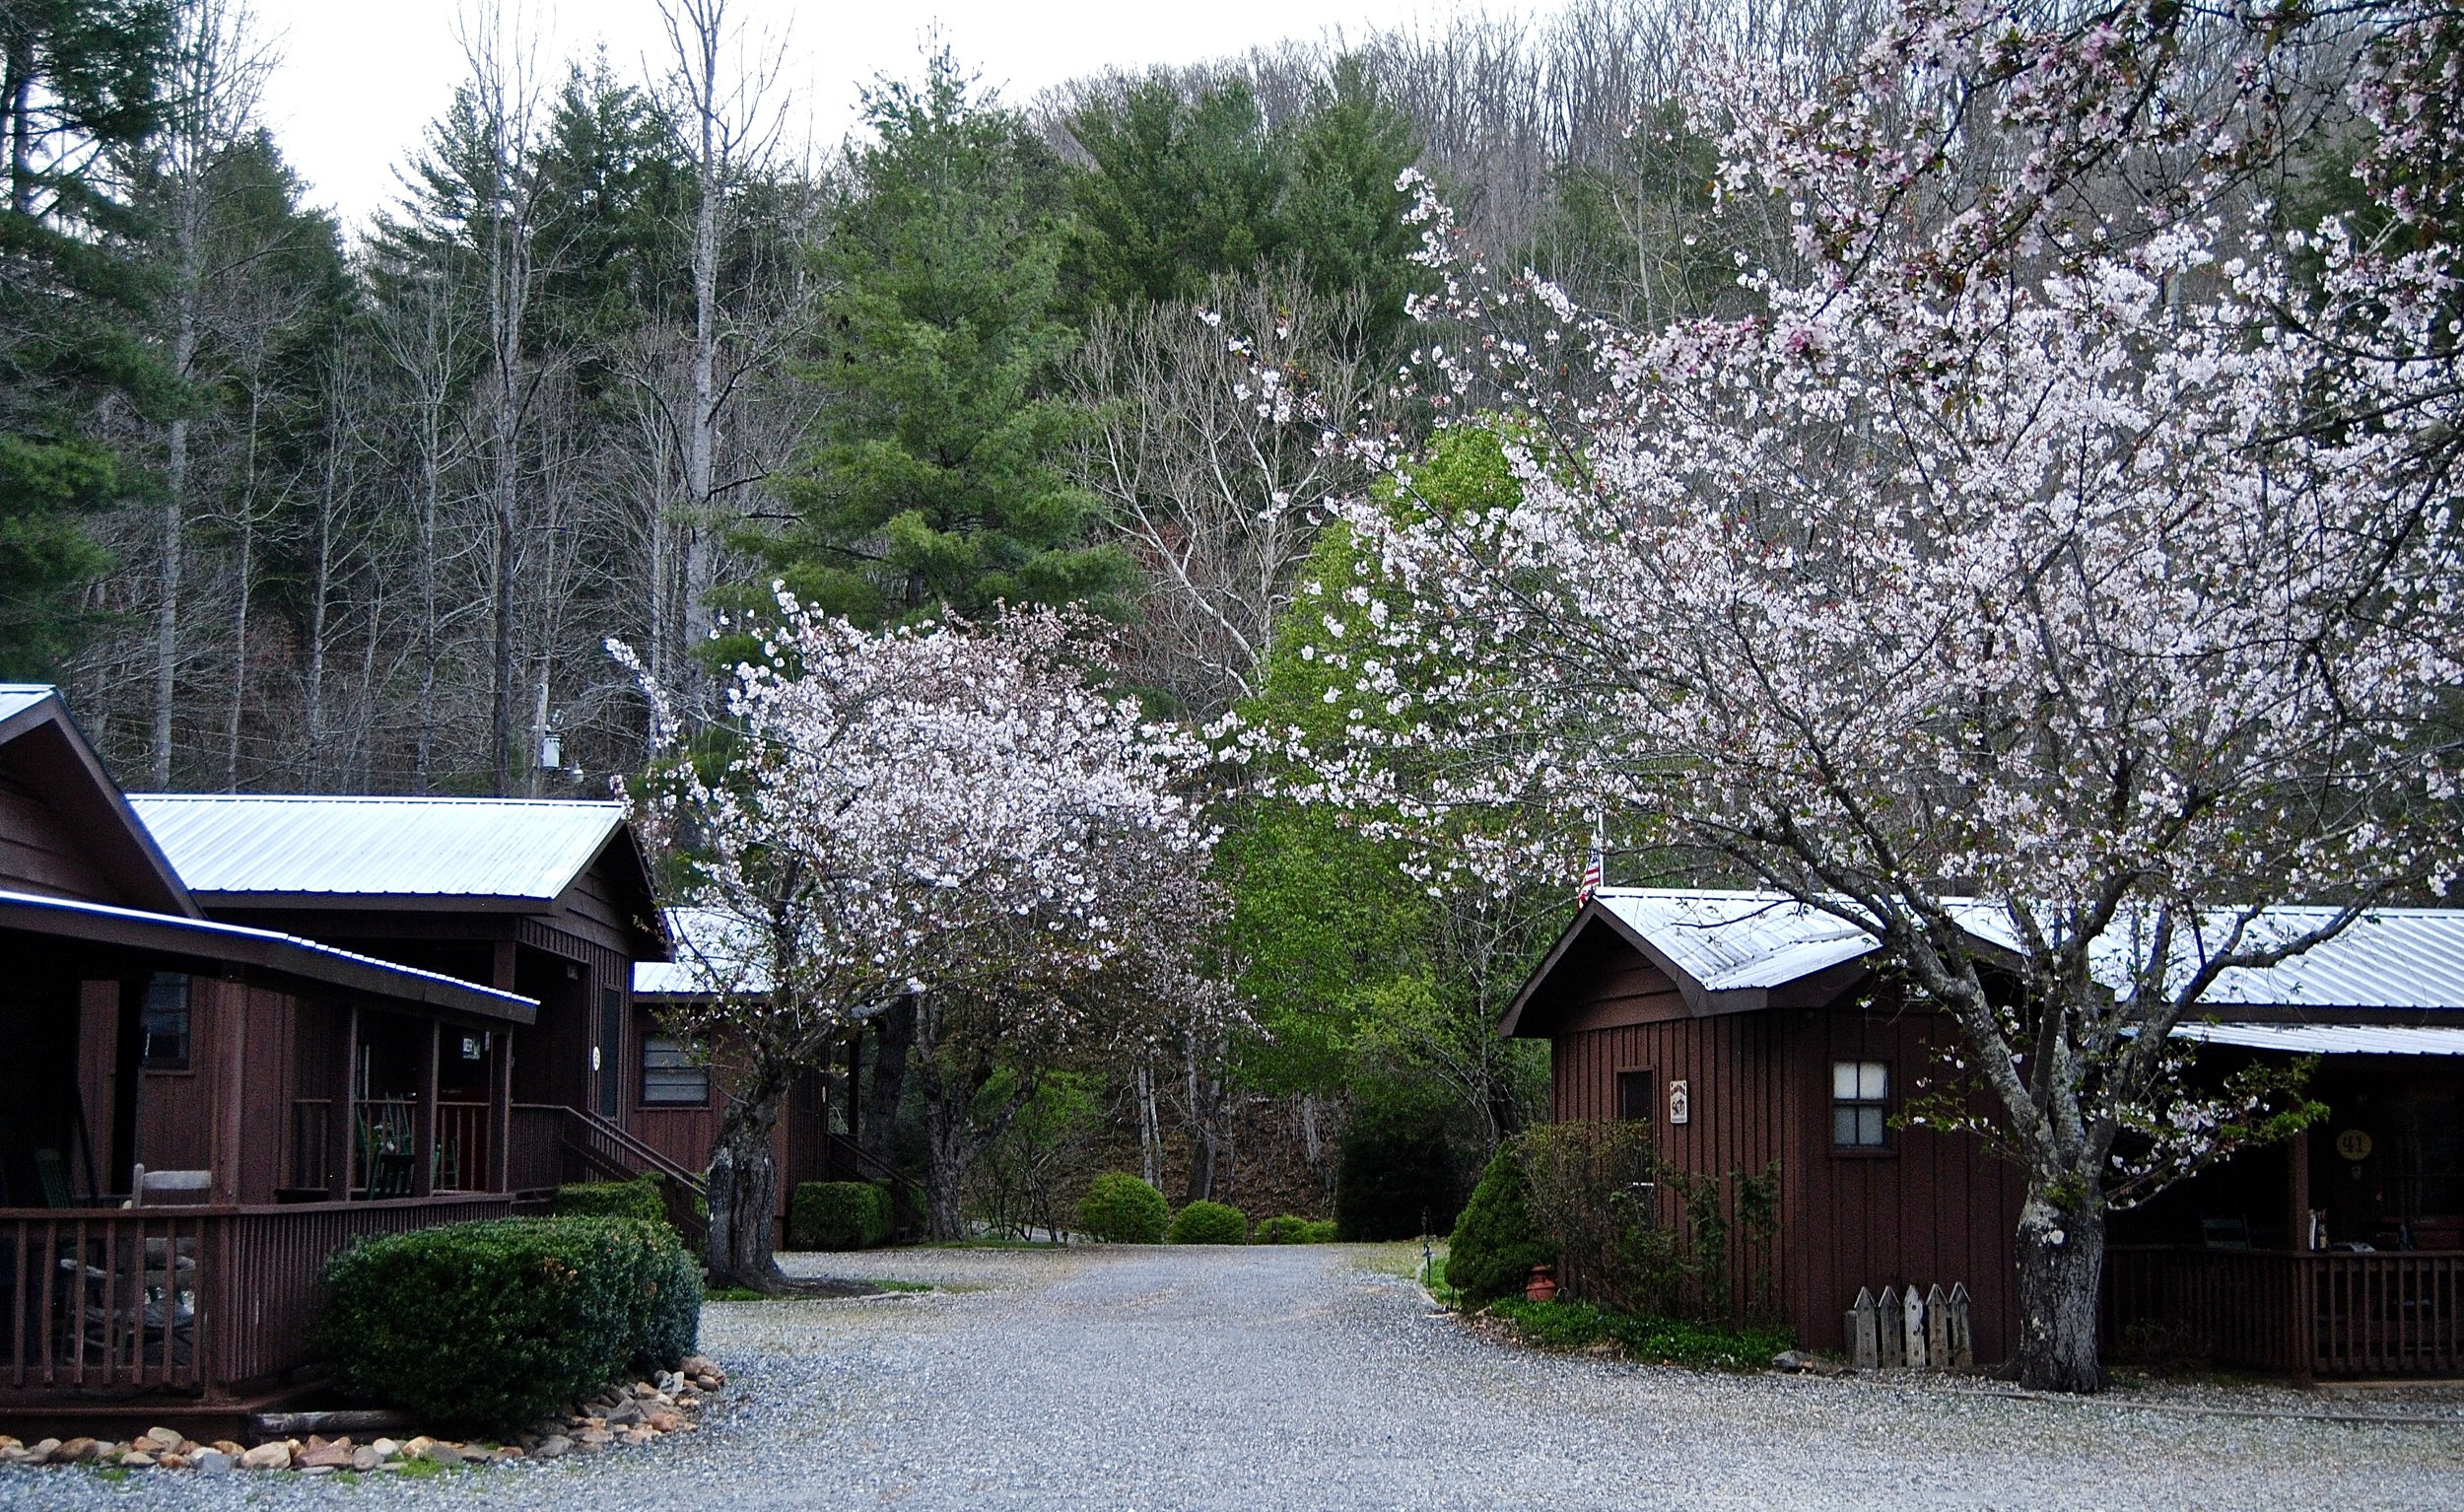 Home Sweet Home - Sunset Farm Cabins - individual cabins with hot tub, grills, fire pit. Reasonably priced & cozy.